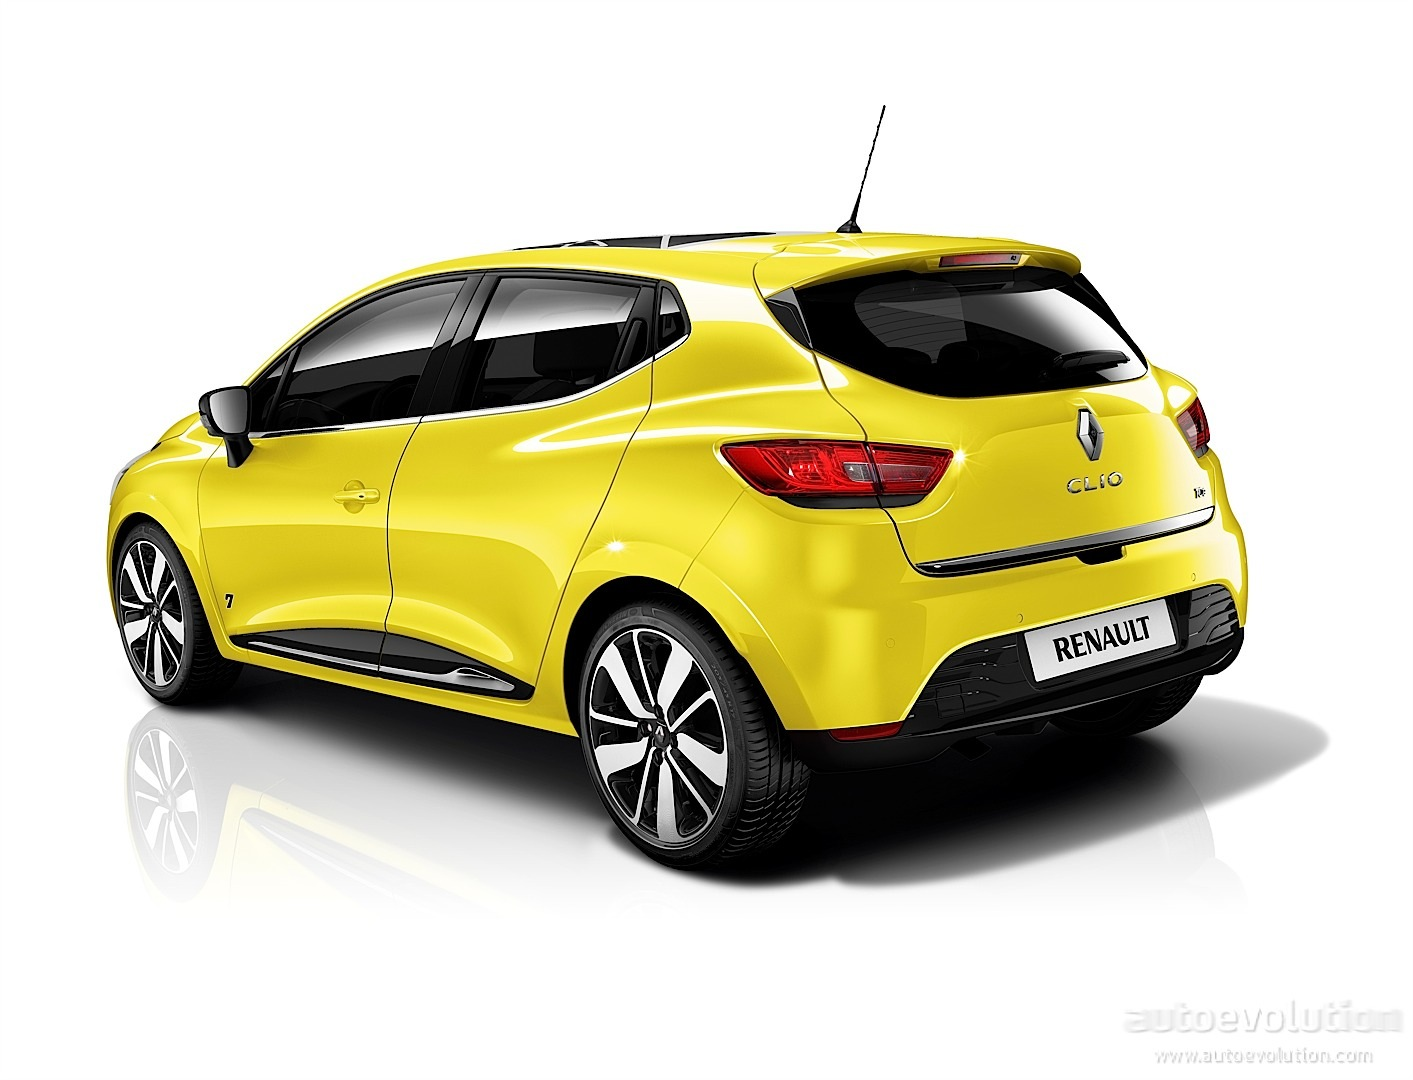 New Renault Clio Officially Revealed Autoevolution